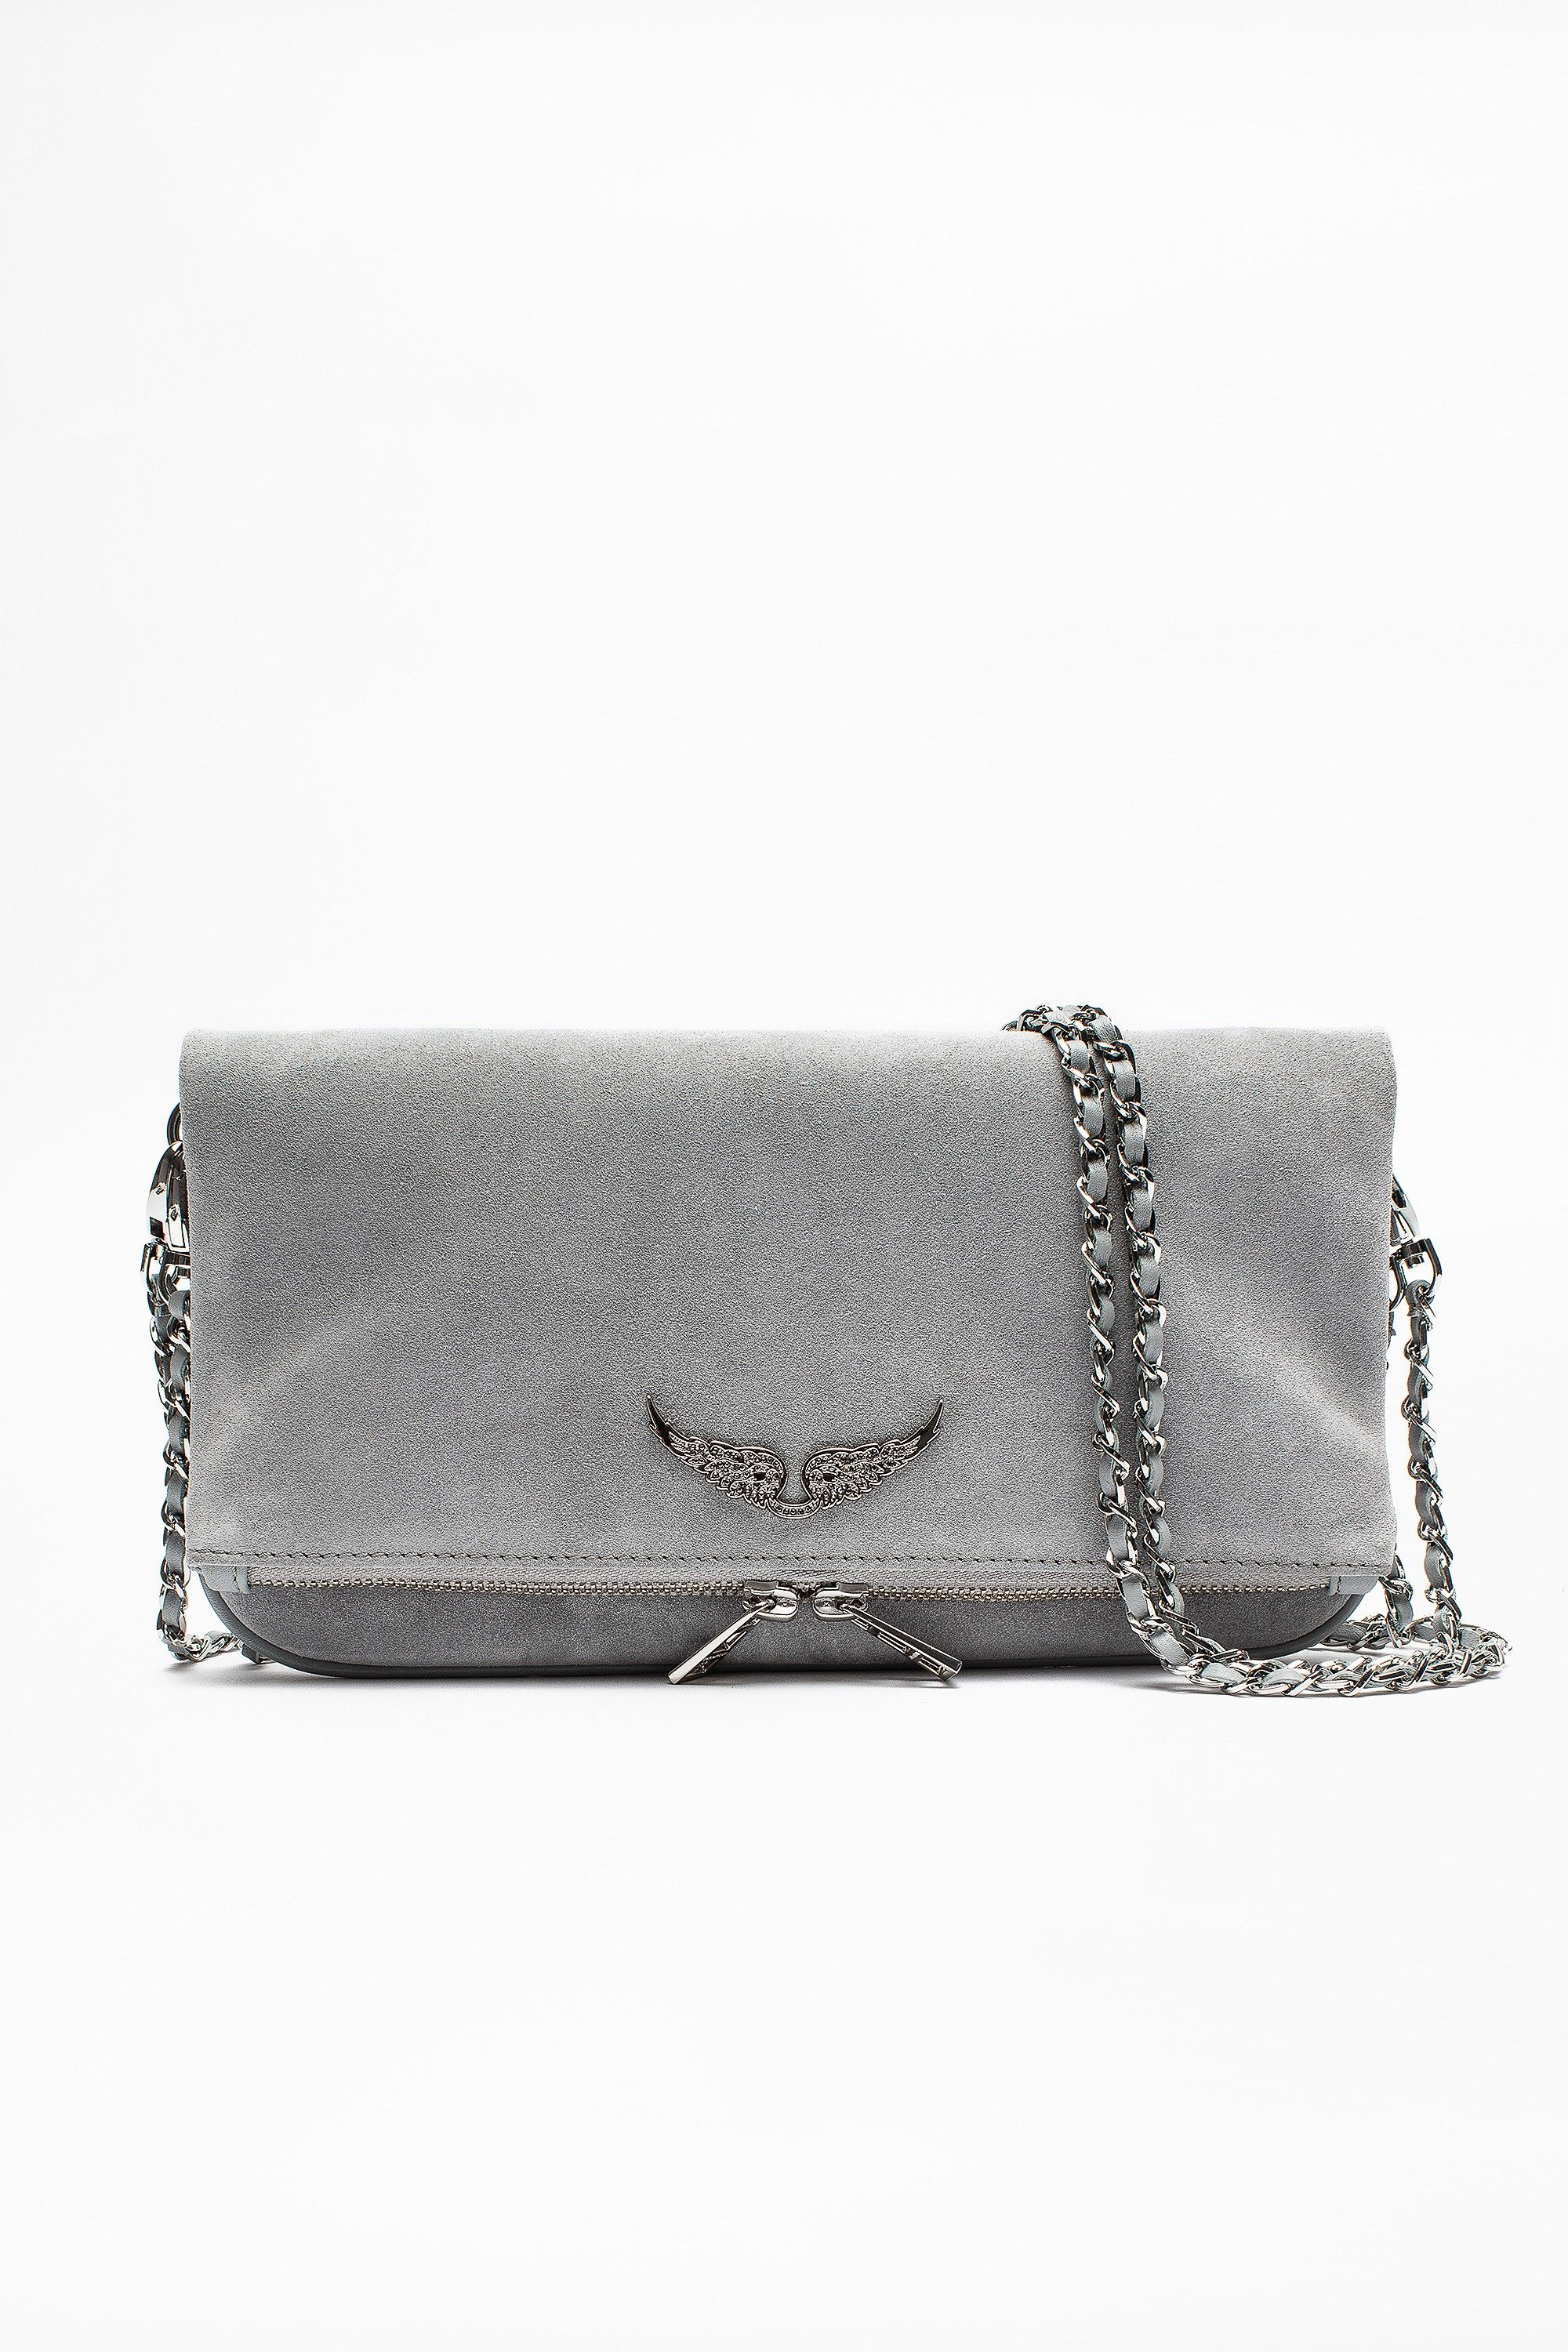 08dcc491d23 Rock Suede Bag women's Zadig&Voltaire,100% cow leather. Available in gray  gray.